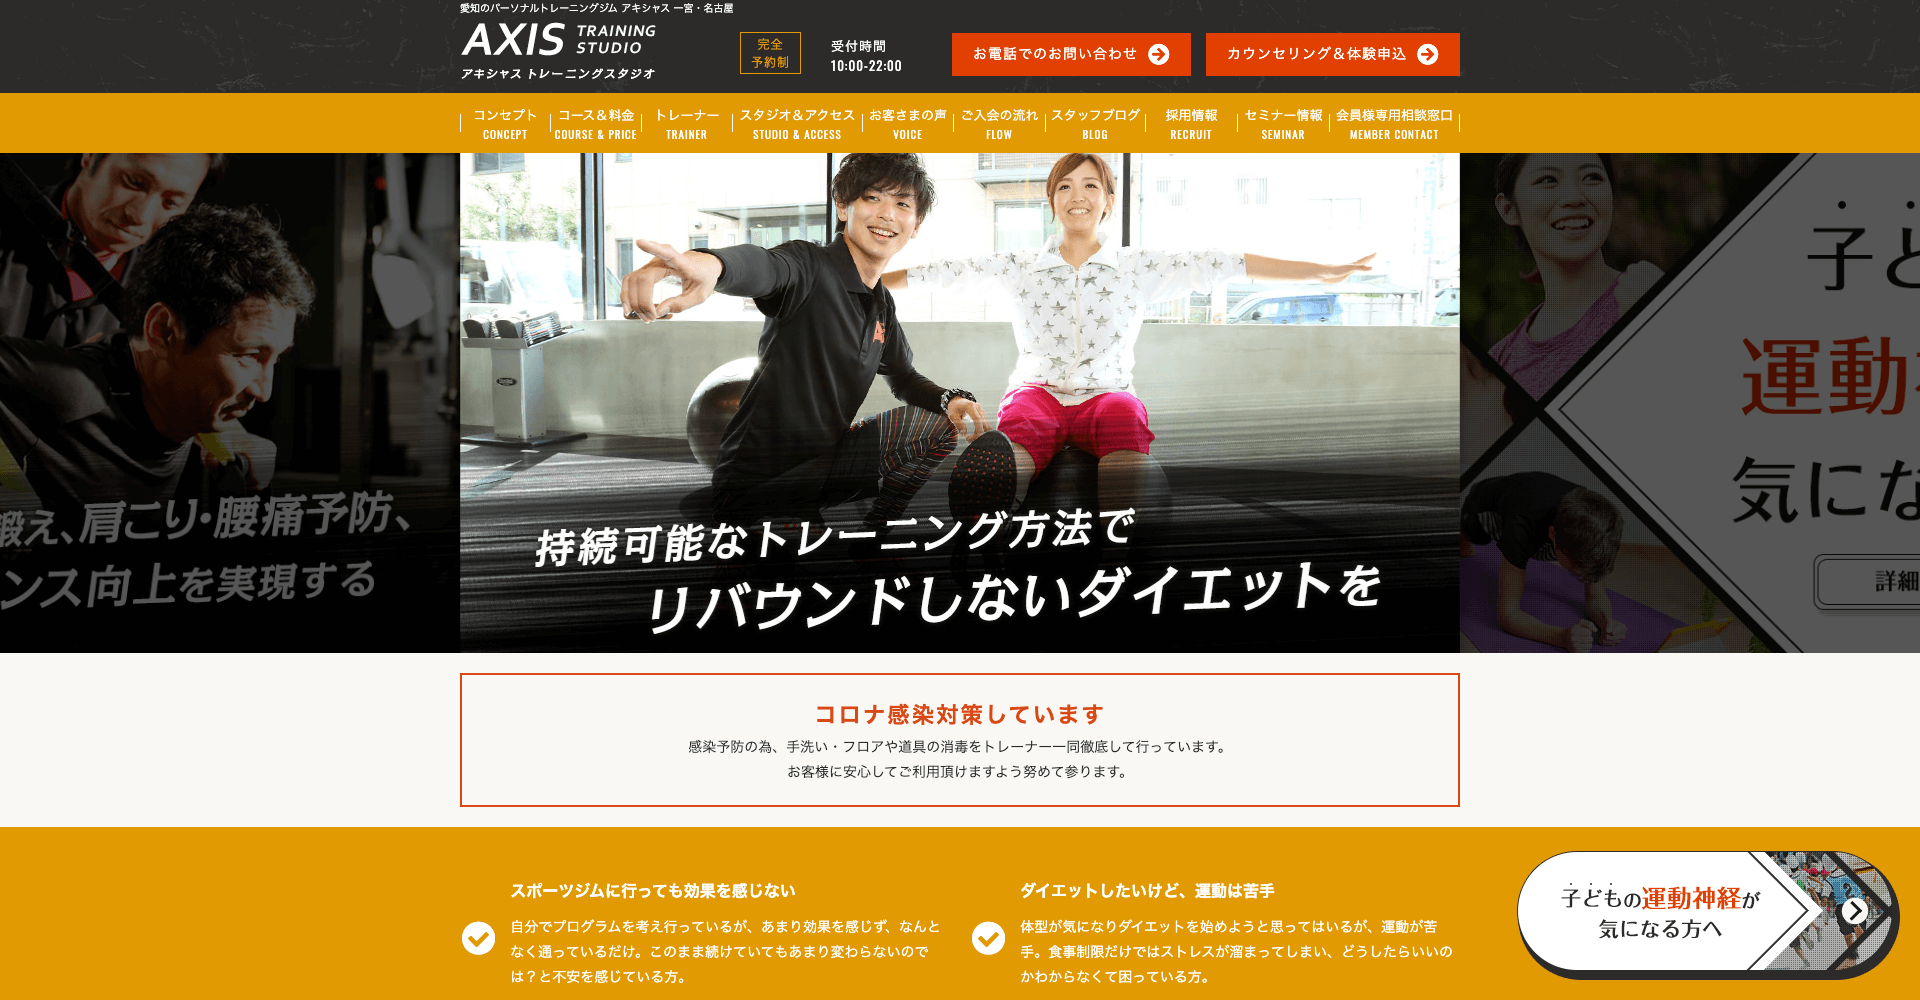 AXIS TRAINING STUDIO 美濃加茂店